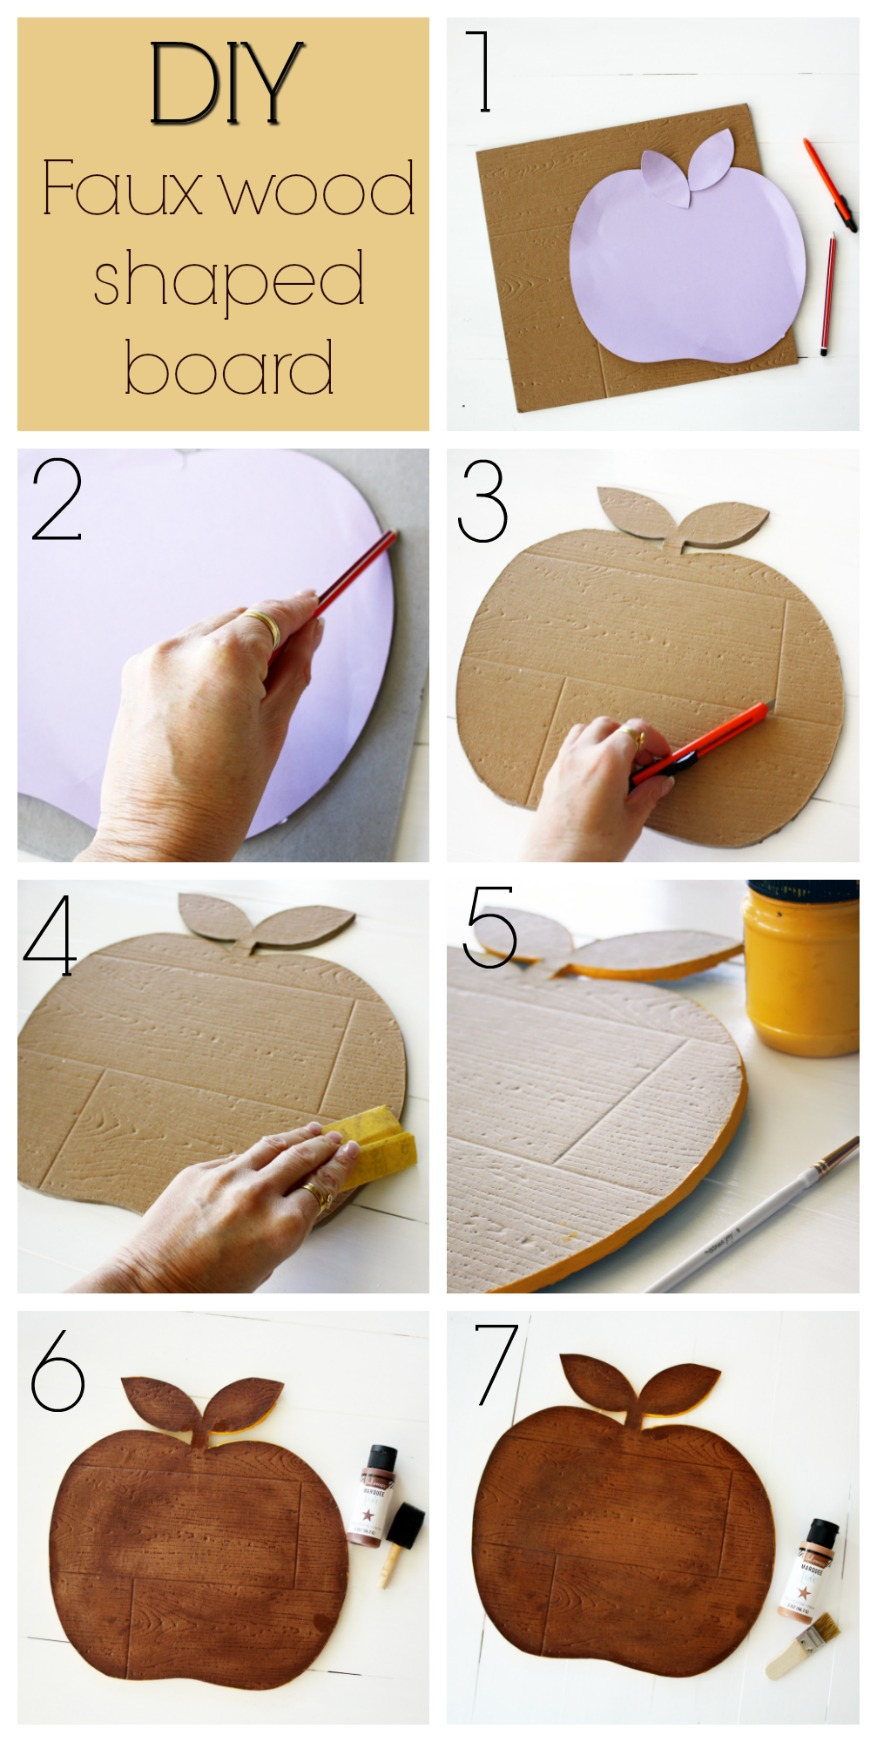 DIY faux chopping board